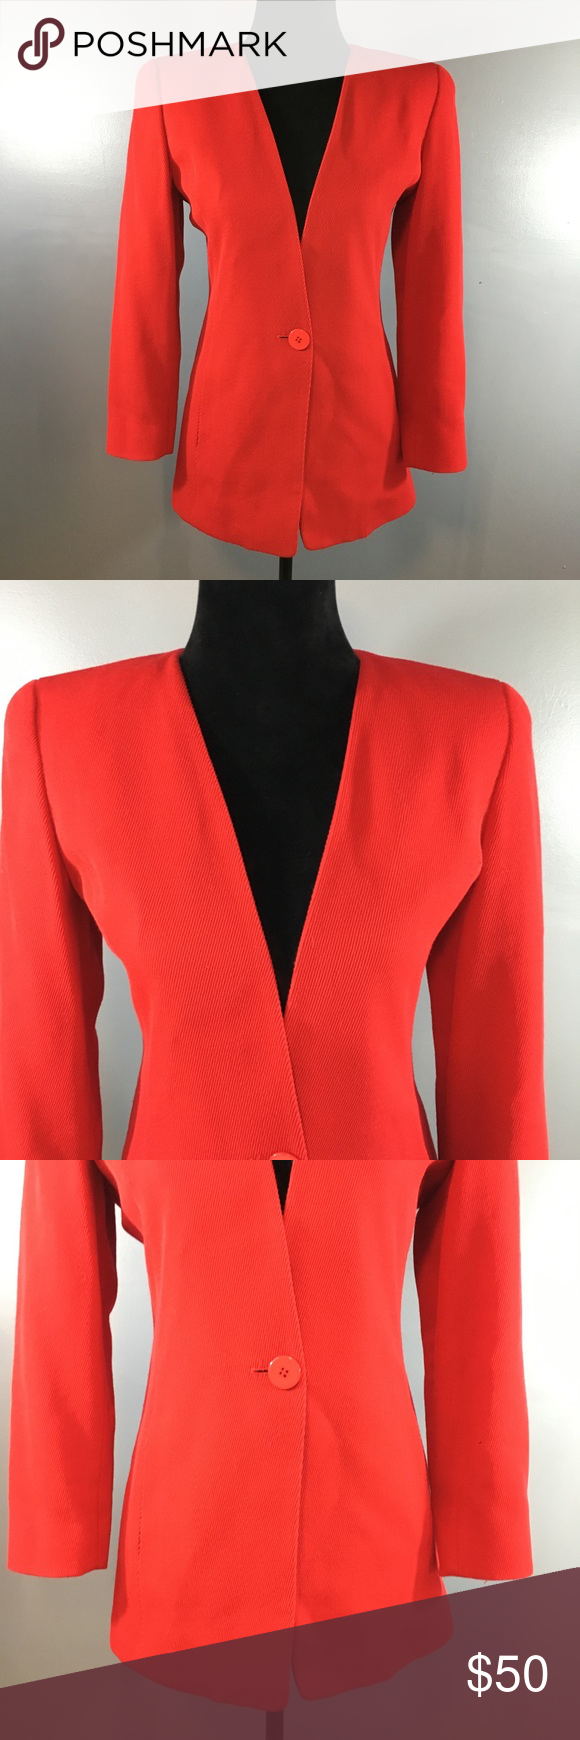 Linda Allard Ellen Tracy Suit A Great Variety Of Models Clothing, Shoes & Accessories